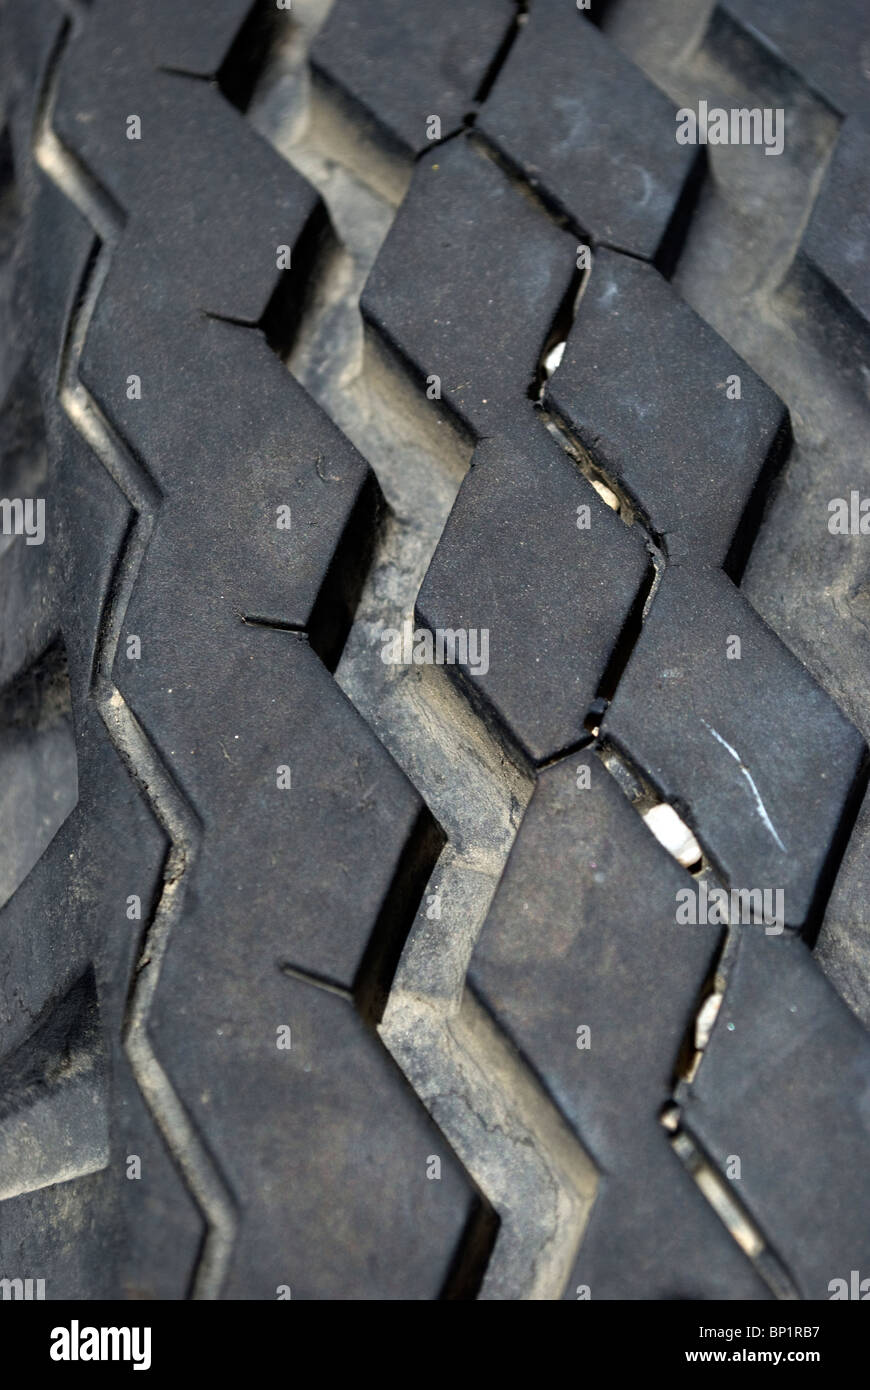 Worn and detailed tread patterns from a truck tire with lodged stones in the tire's grooves. - Stock Image